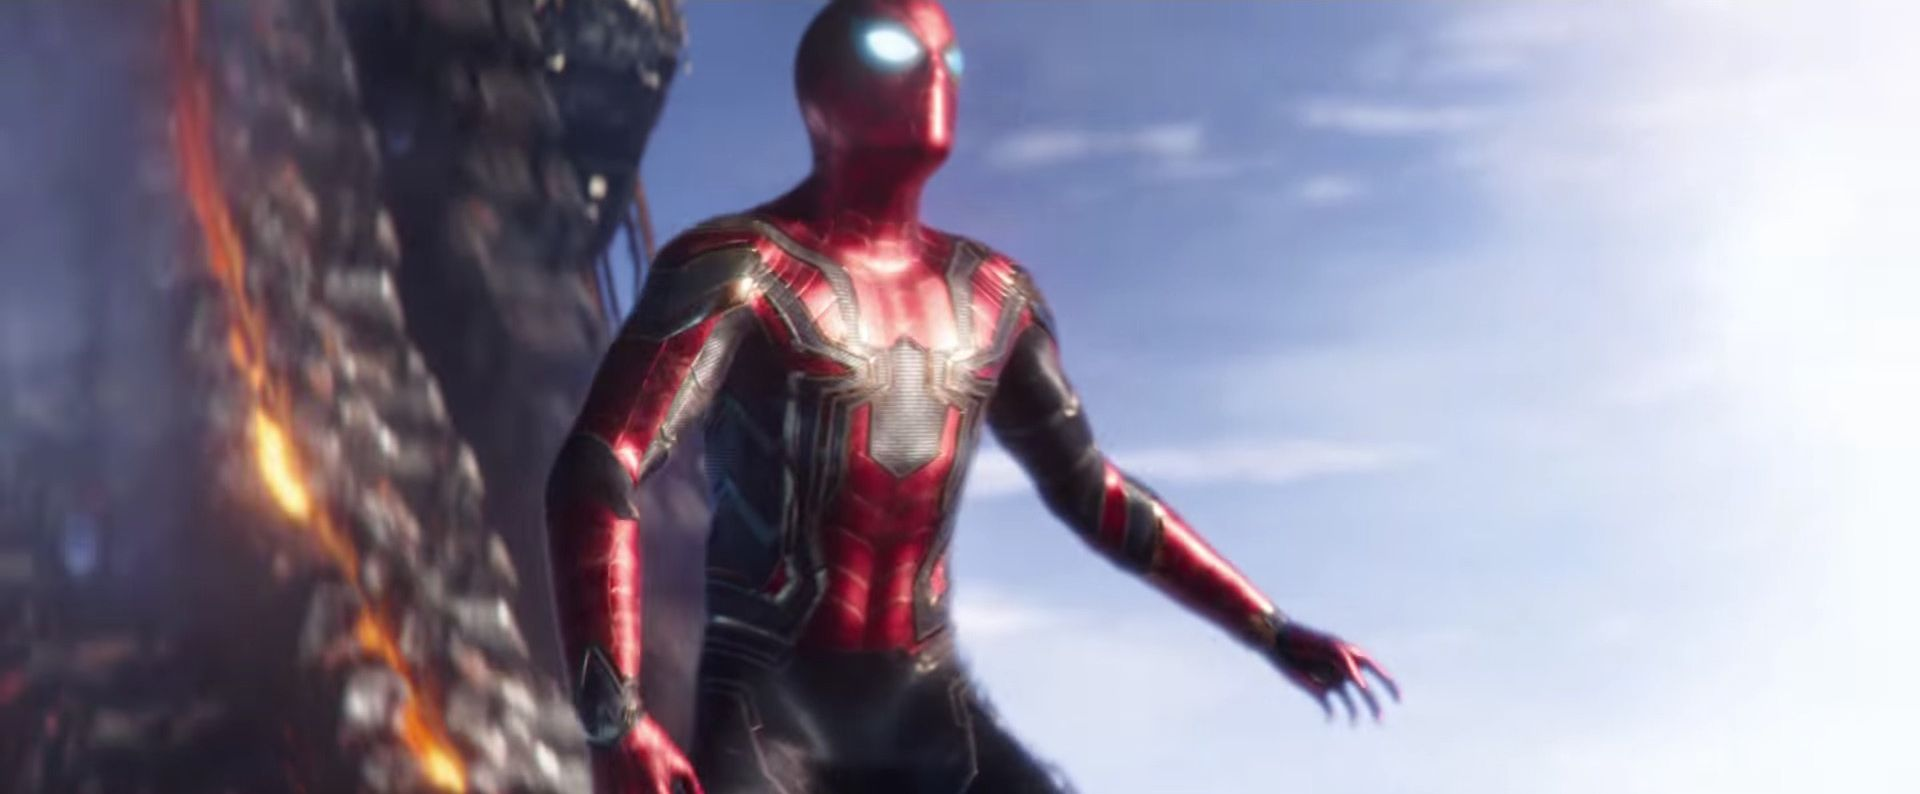 Avengers: Infinity War - Spider-Man's new Iron Spider